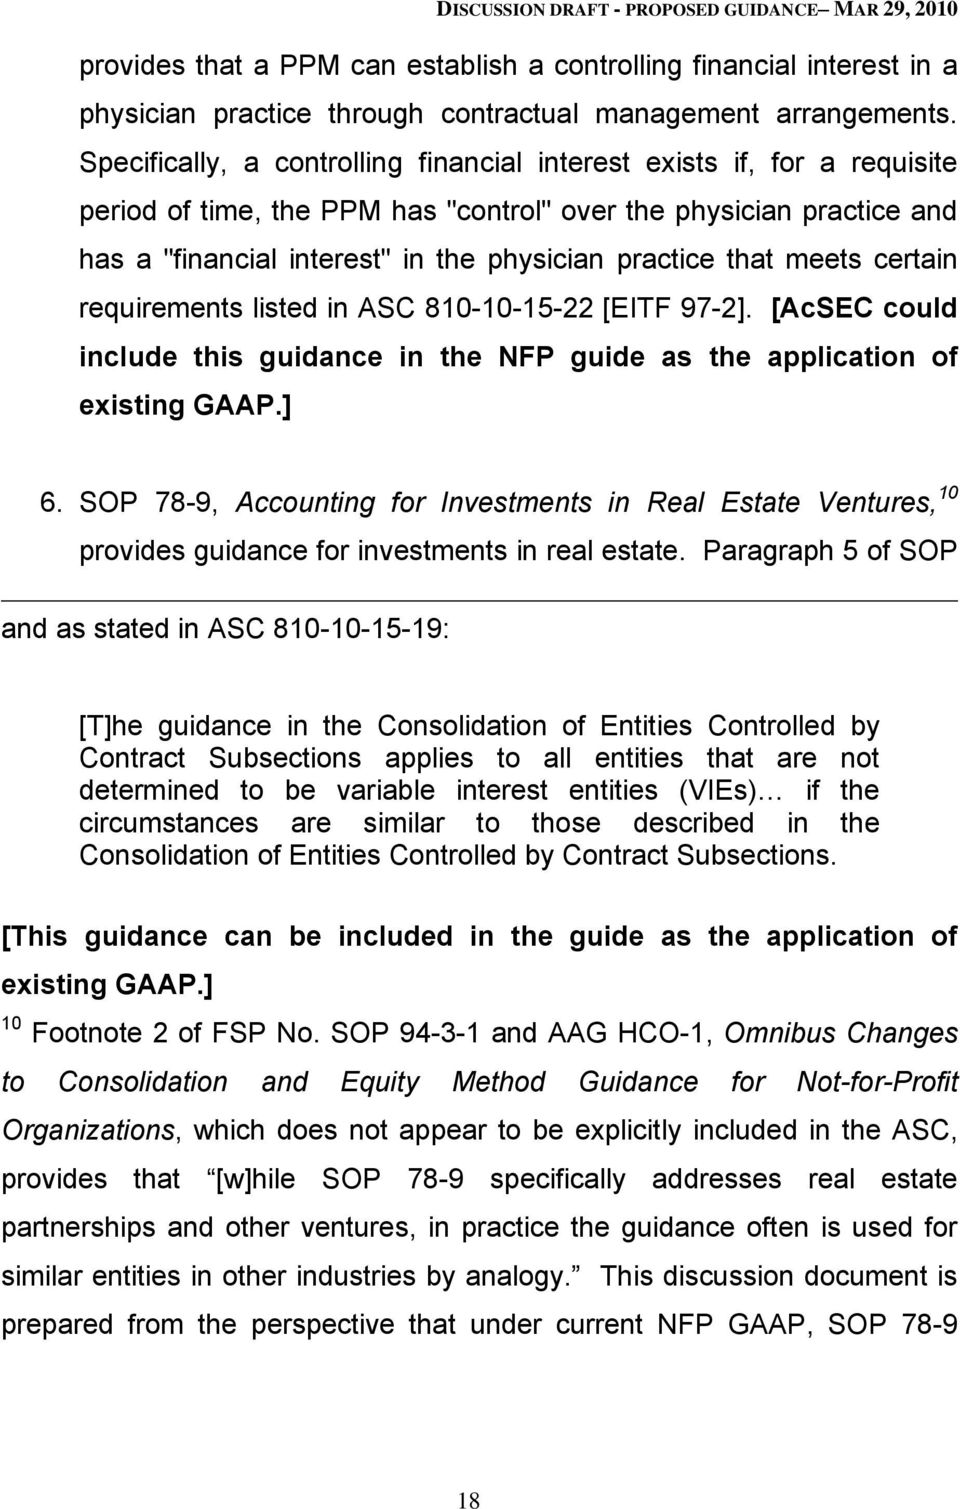 that meets certain requirements listed in ASC 810-10-15-22 [EITF 97-2]. [AcSEC could include this guidance in the NFP guide as the application of existing GAAP.] 6.